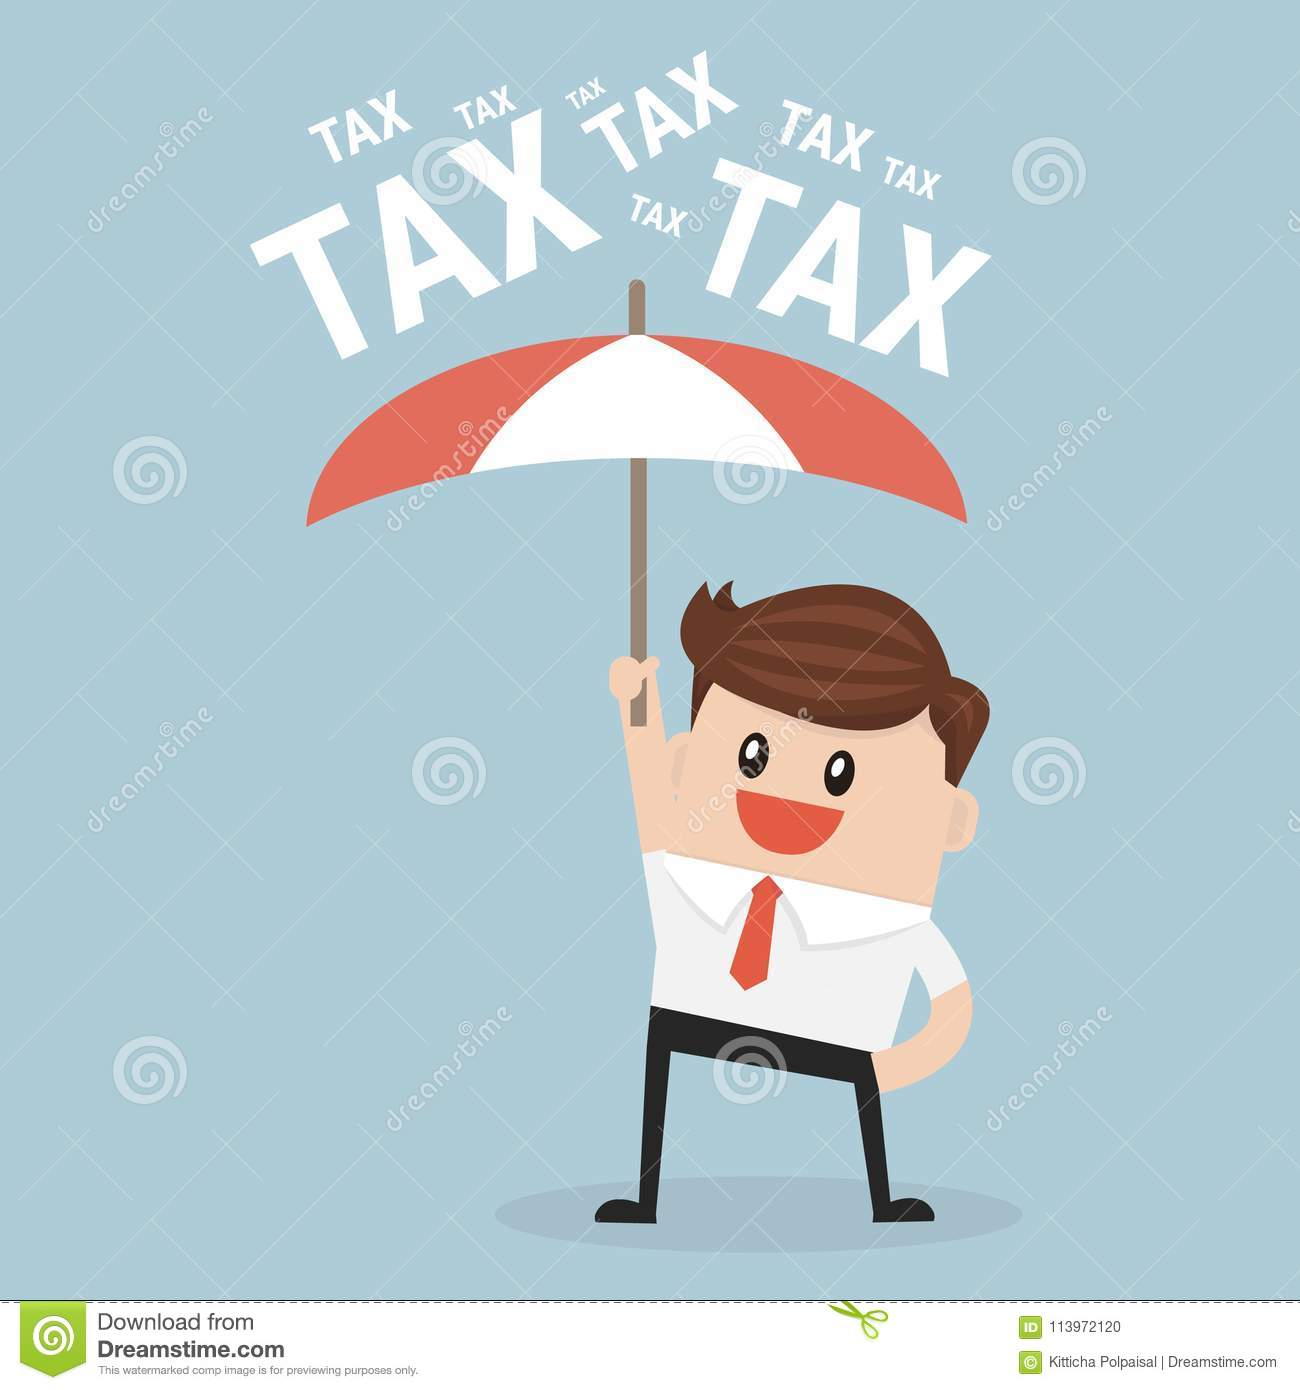 Businessman using umbrella for protecting him from tax.